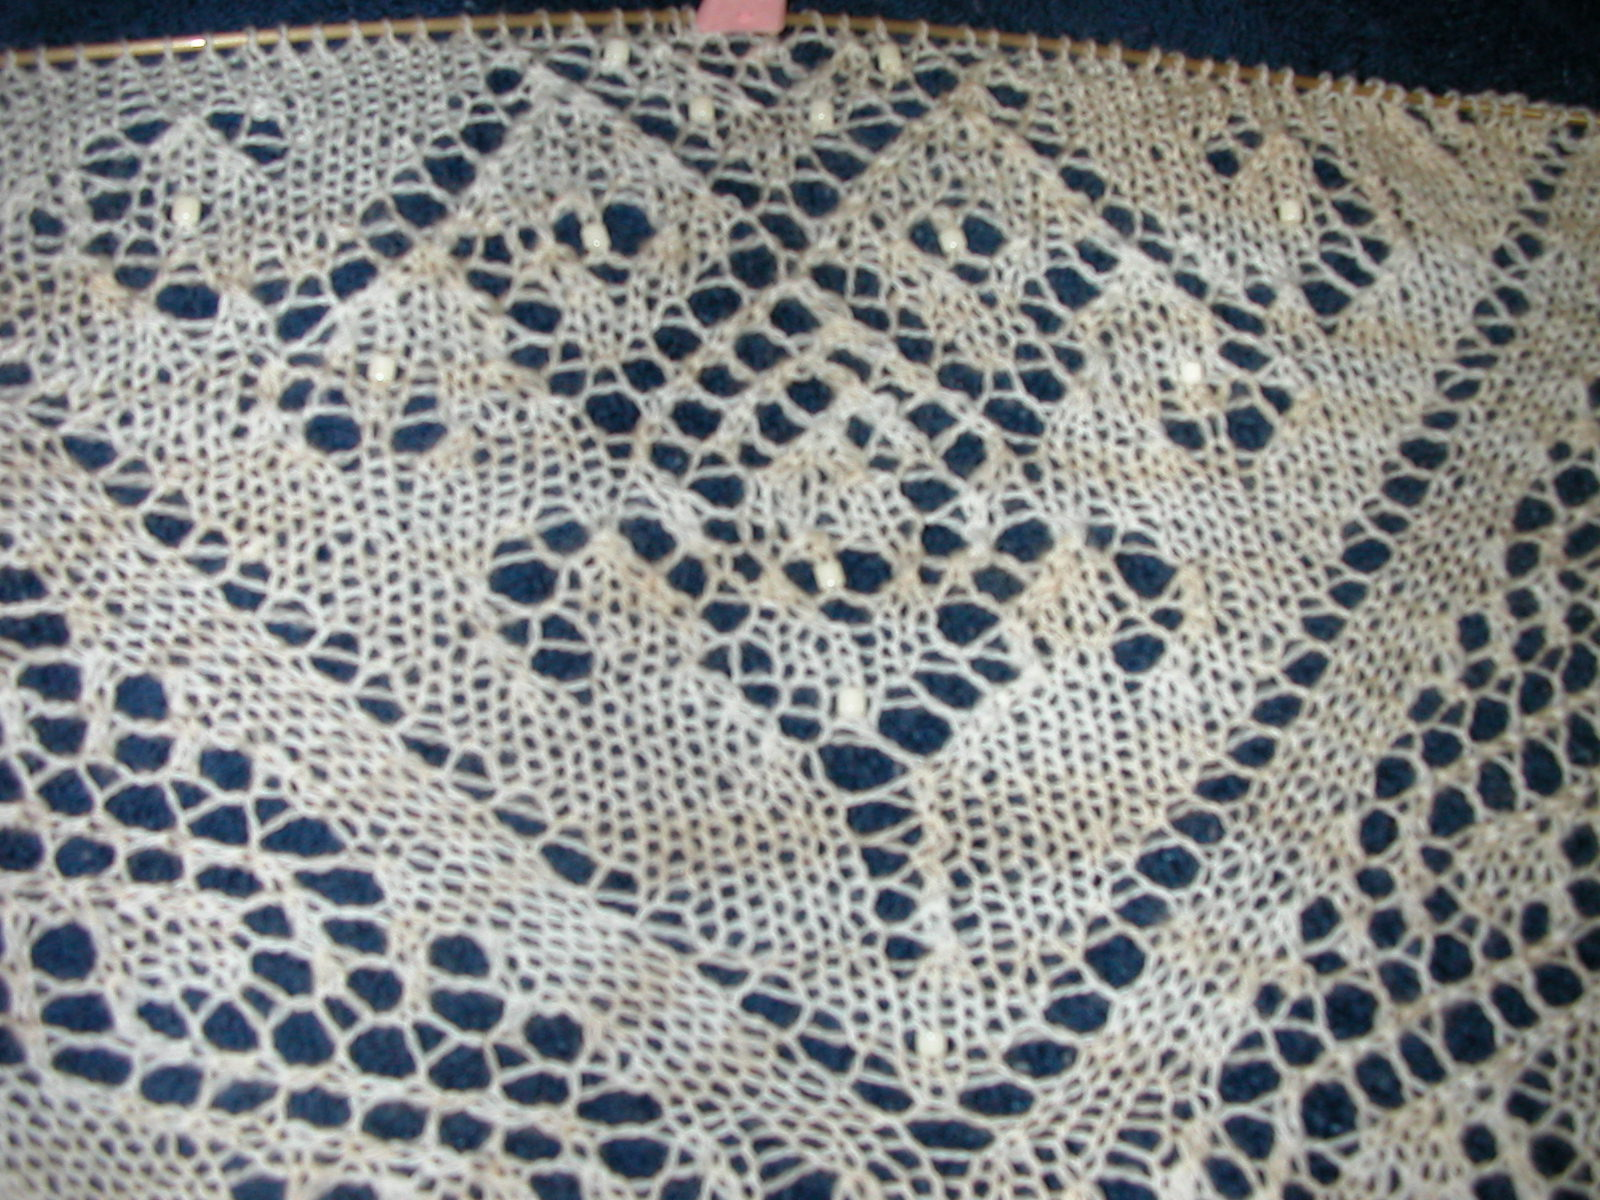 Knitting Patterns For Knit In Lace : Lace knitting-Knitting Gallery